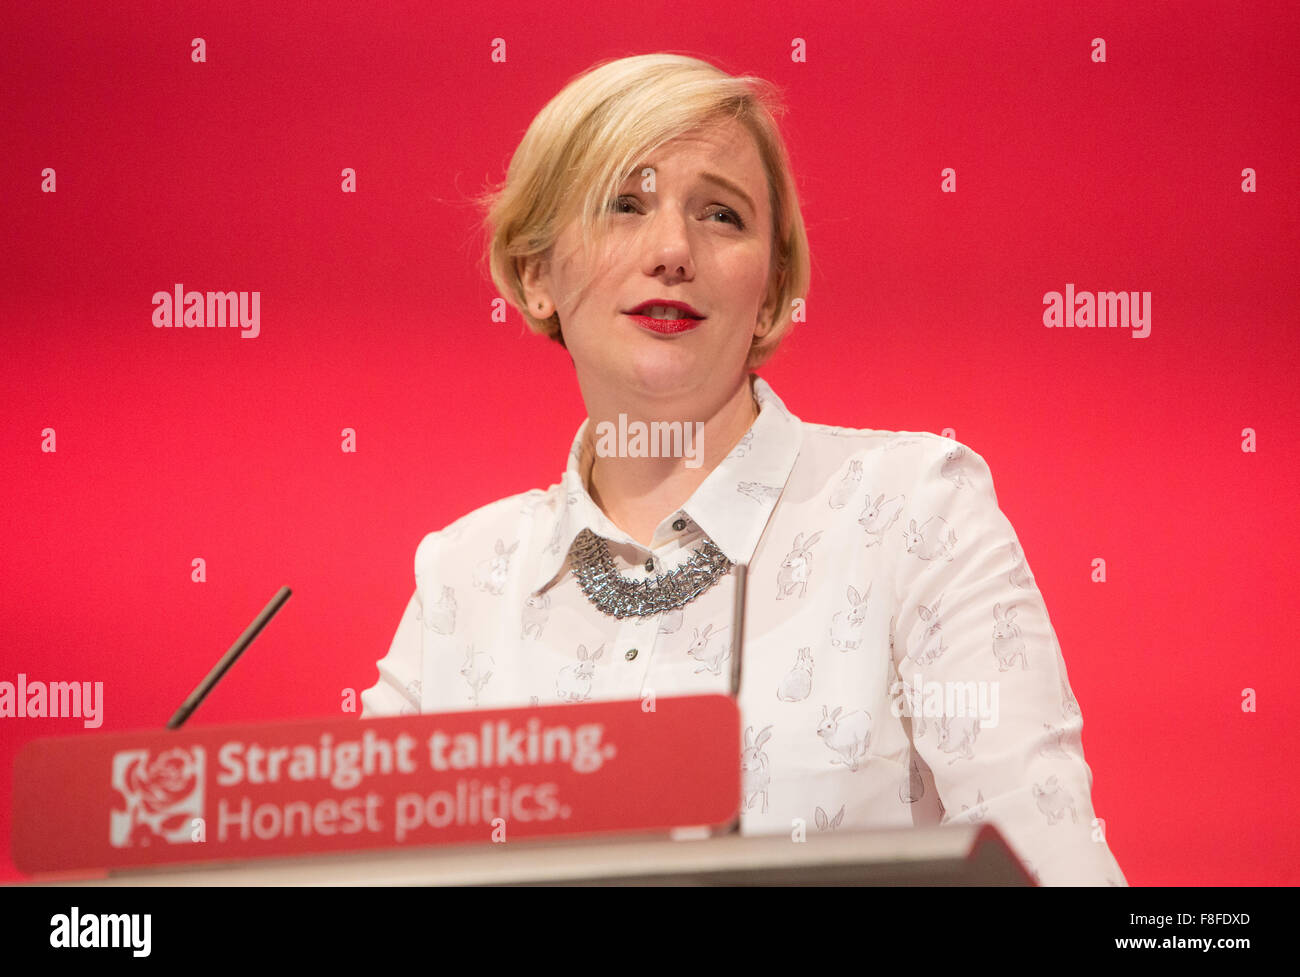 Stella Creasey,MP for Walthamstow,speaks at the labour party conference in Brighton - Stock Image